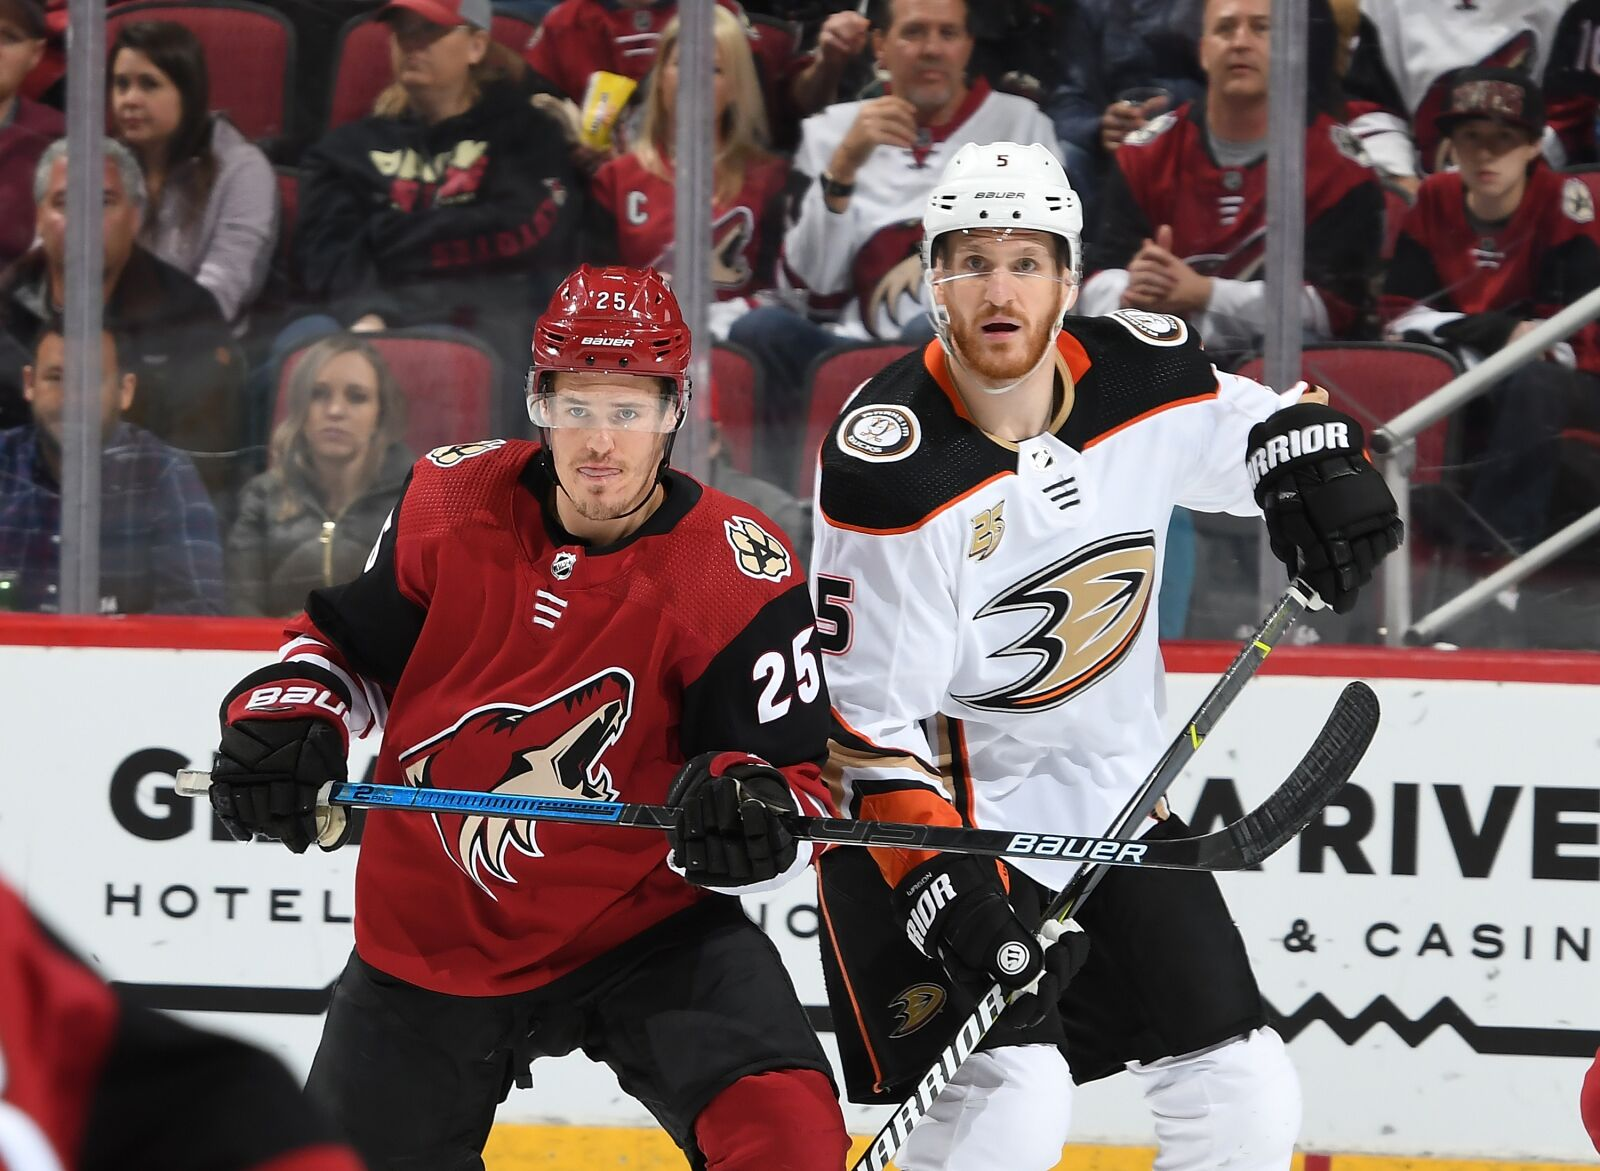 Arizona Coyotes and the NHLPA Player Poll results